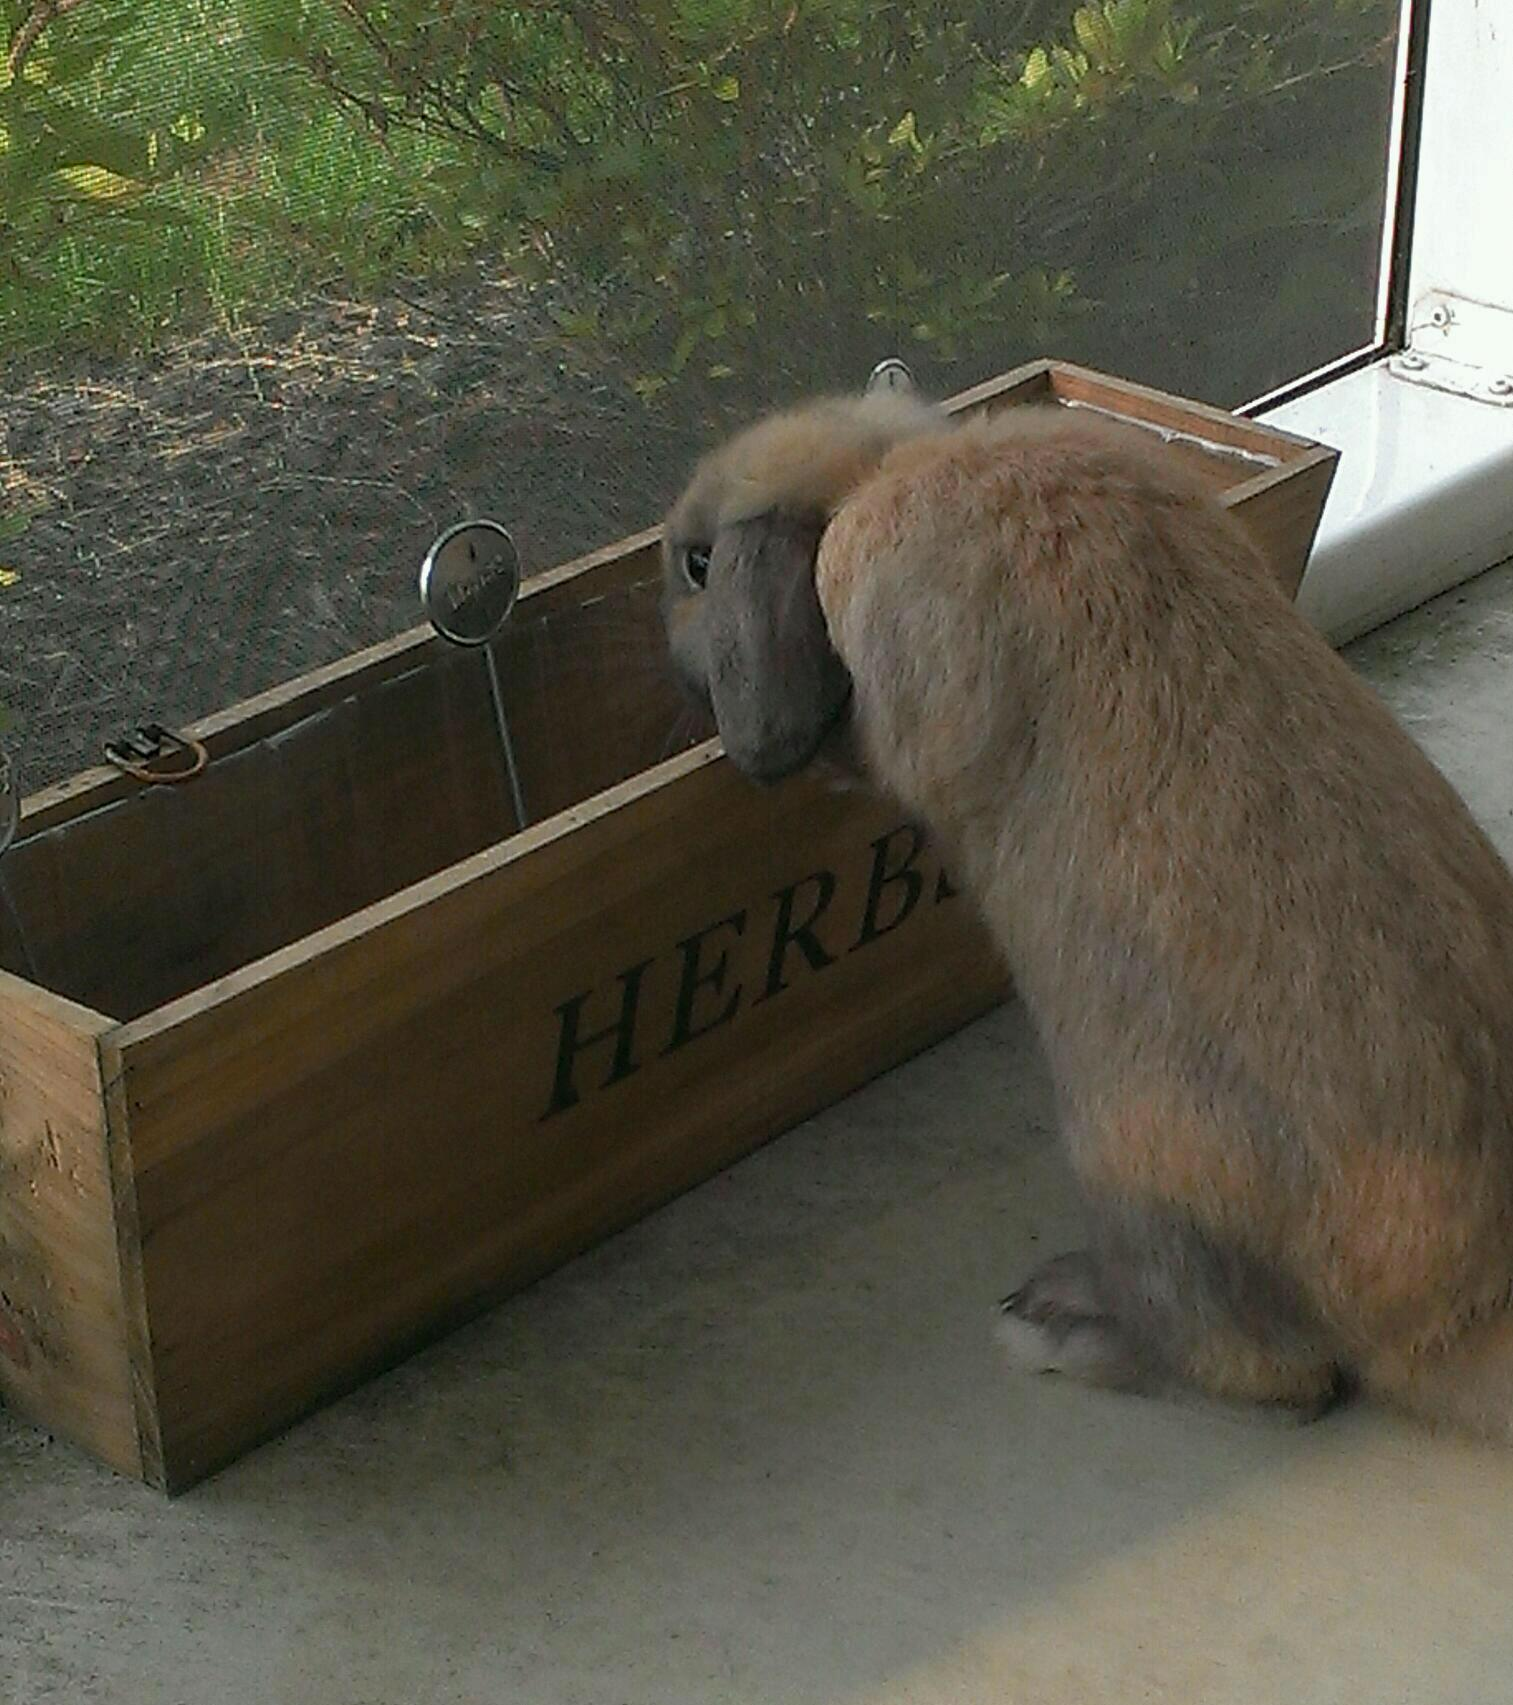 Bunny Checks the Planter to See If Any Greens Have Appeared Yet